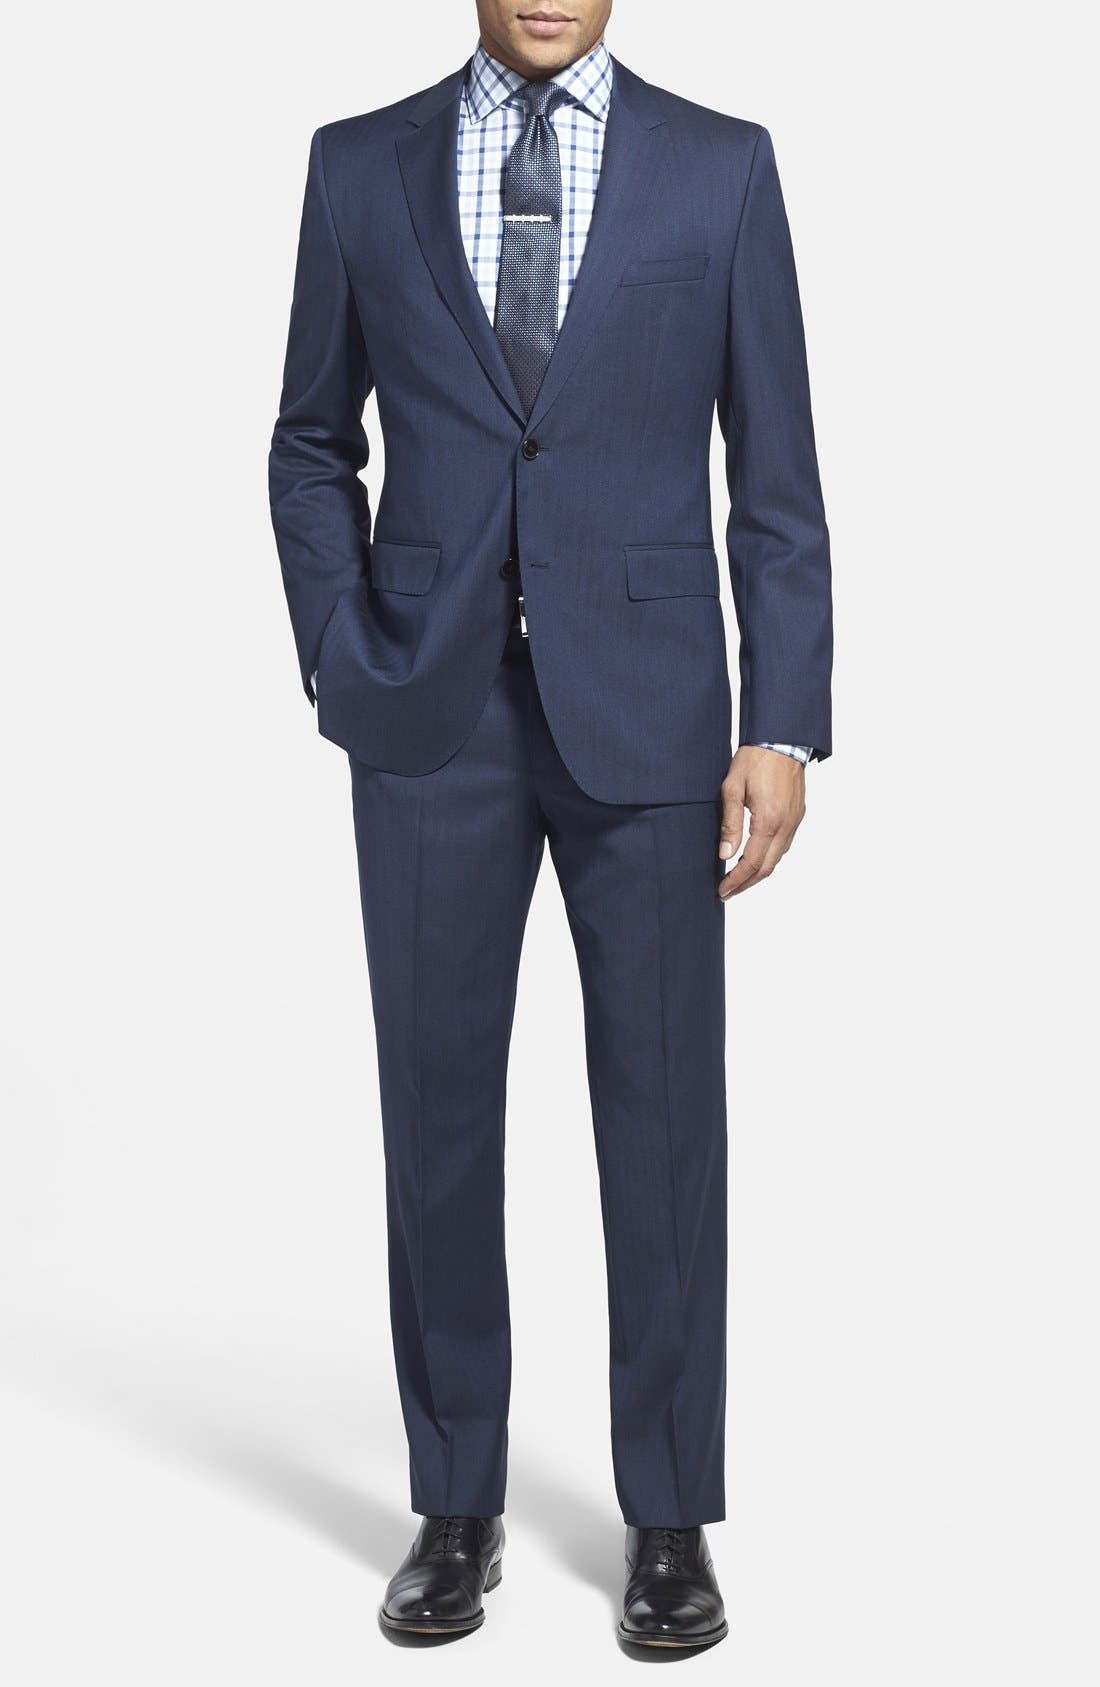 ZZDNUHUGO BOSS,                             BOSS 'James/Sharp' Trim Fit Herringbone Suit,                             Main thumbnail 1, color,                             410